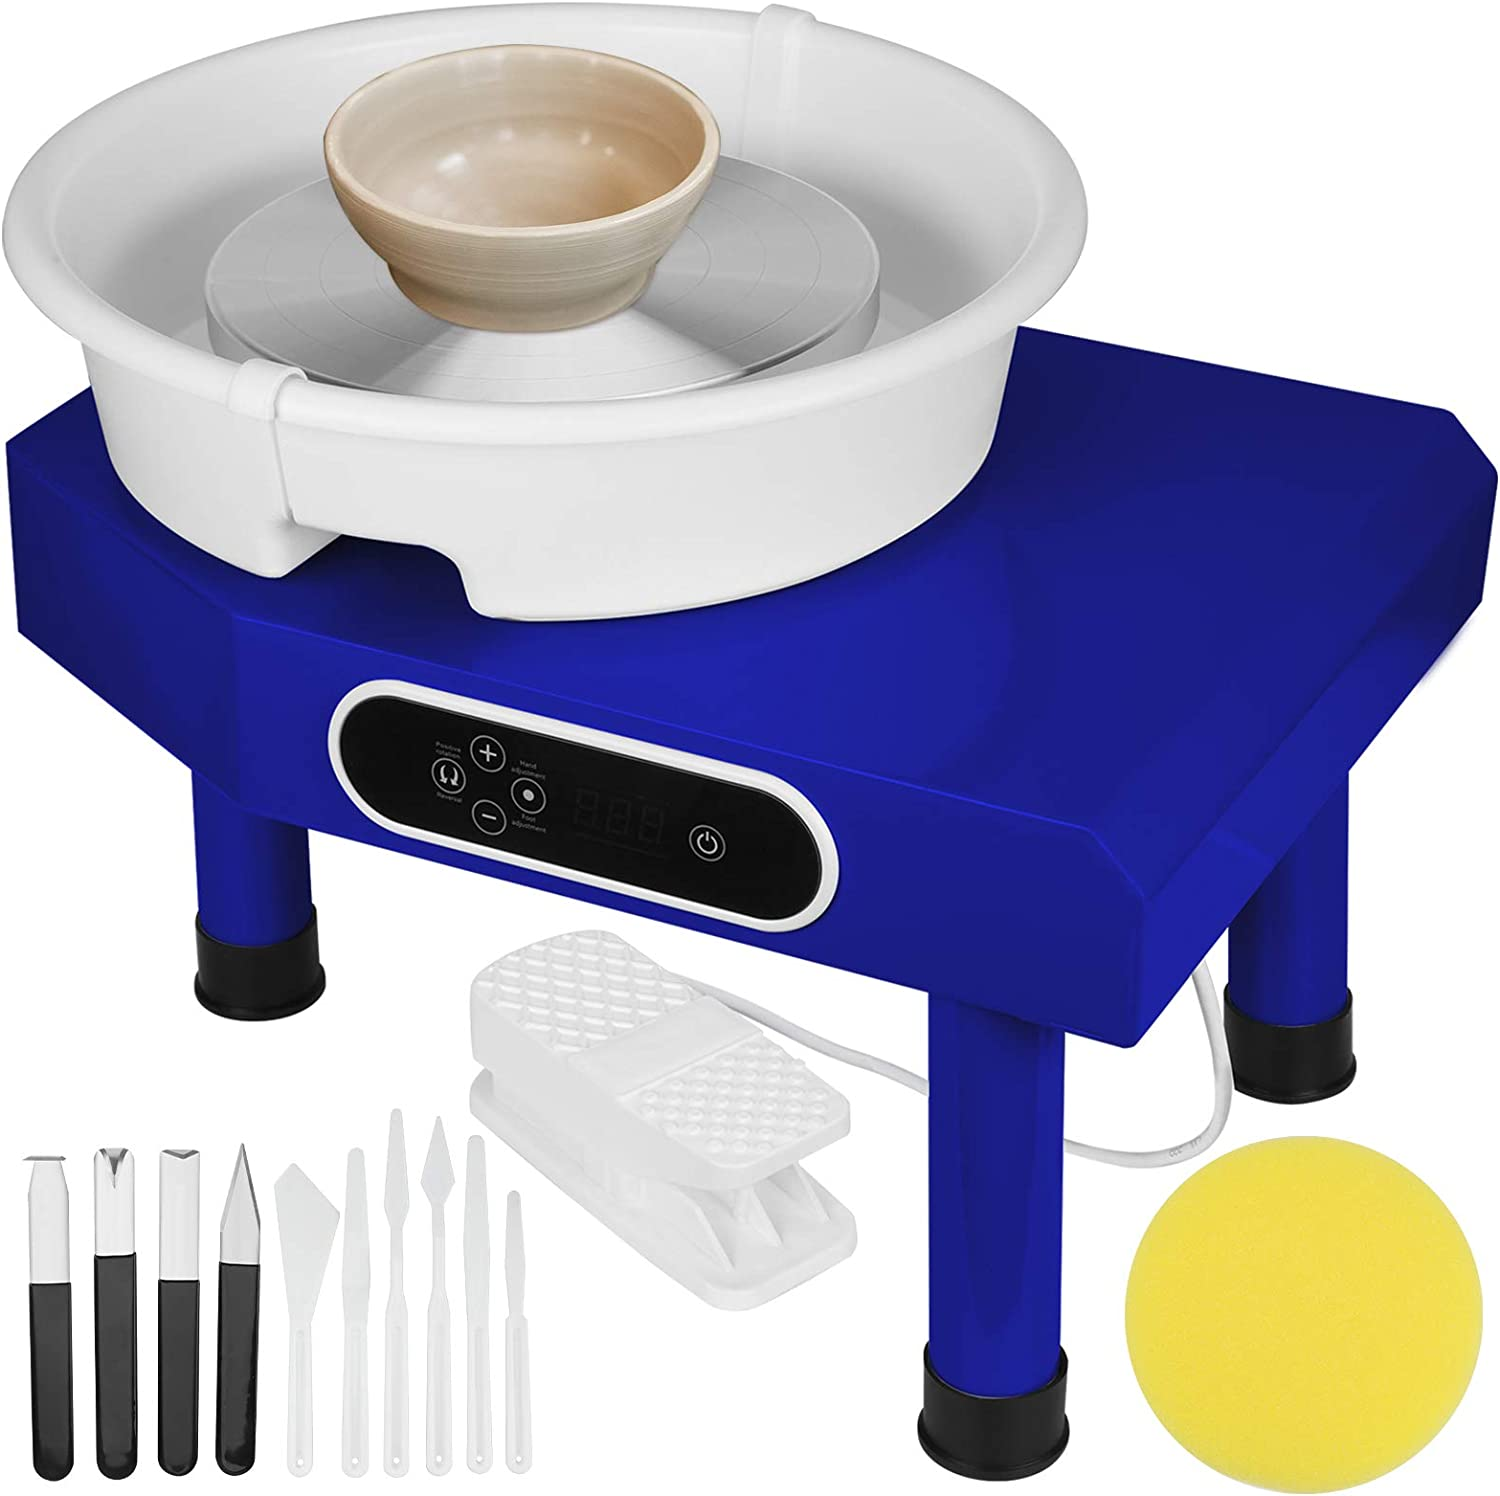 LCD Pottery Wheel for Adults Kids Beginners, 350W Pottery Wheel Machine with Foot Pedal, Removable Basin, 9.8in Ceramic Turnable, 11 Pottery Tools, Christmas Gifts (Blue)